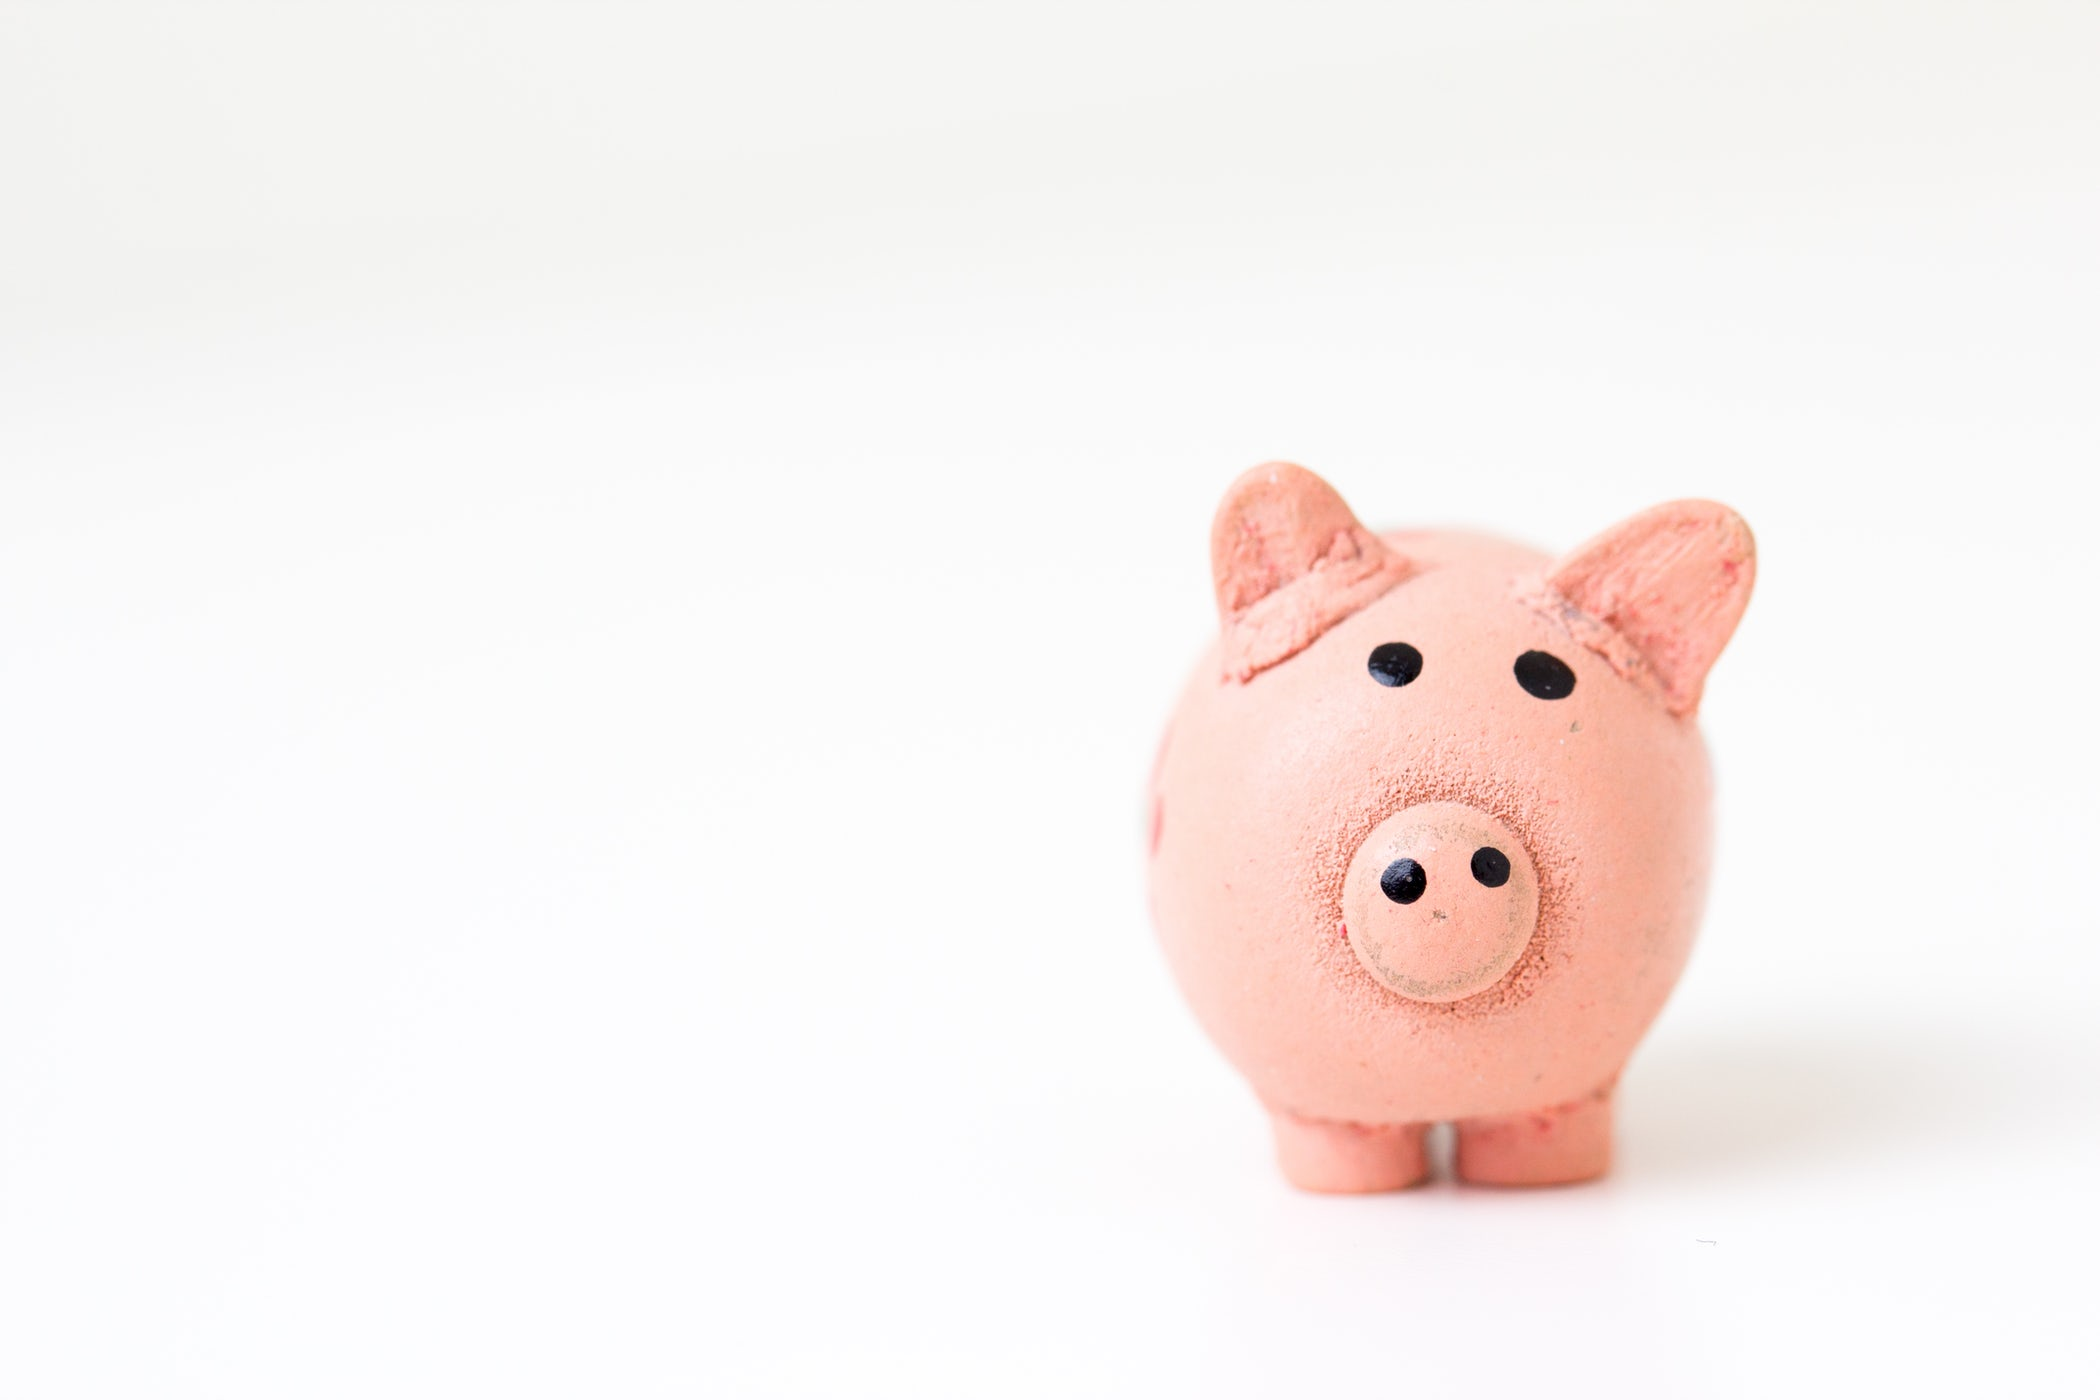 Piggy bank background image for a Danville Financial Advisor Firm